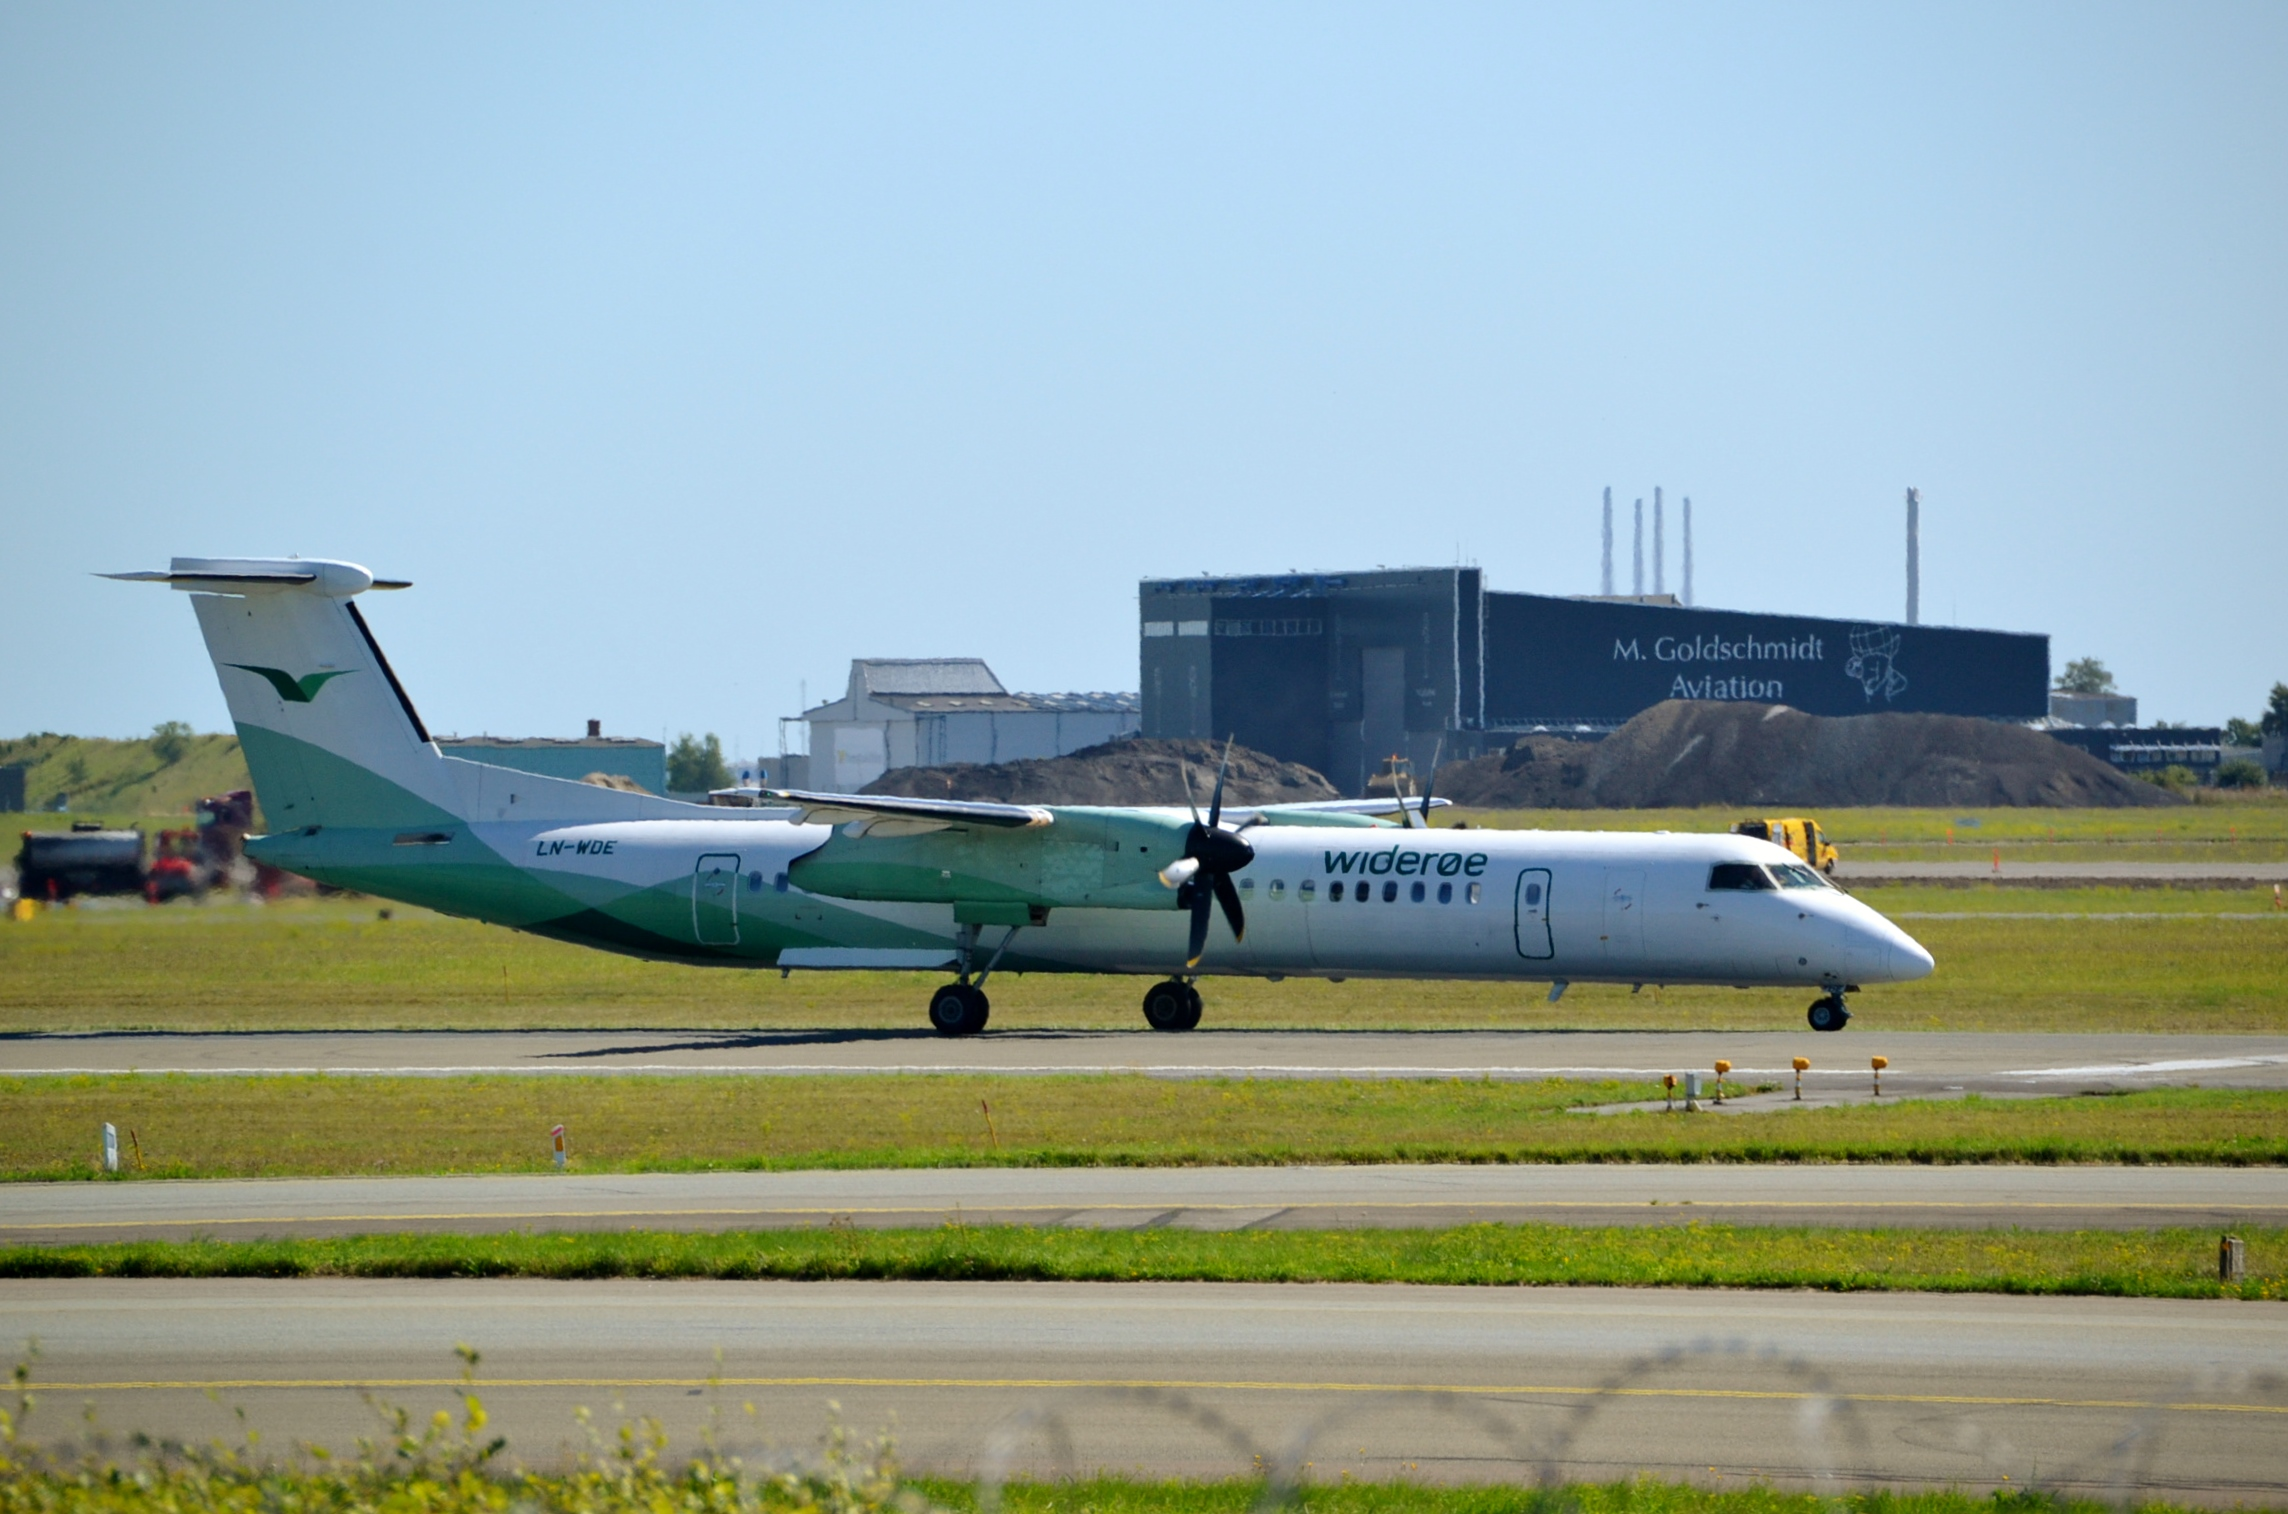 Bombardier Dash 8-Q400 (LN-WDE) i Widerøe-bemaling. (Fofo: Alec Wilson | CC 2.0)